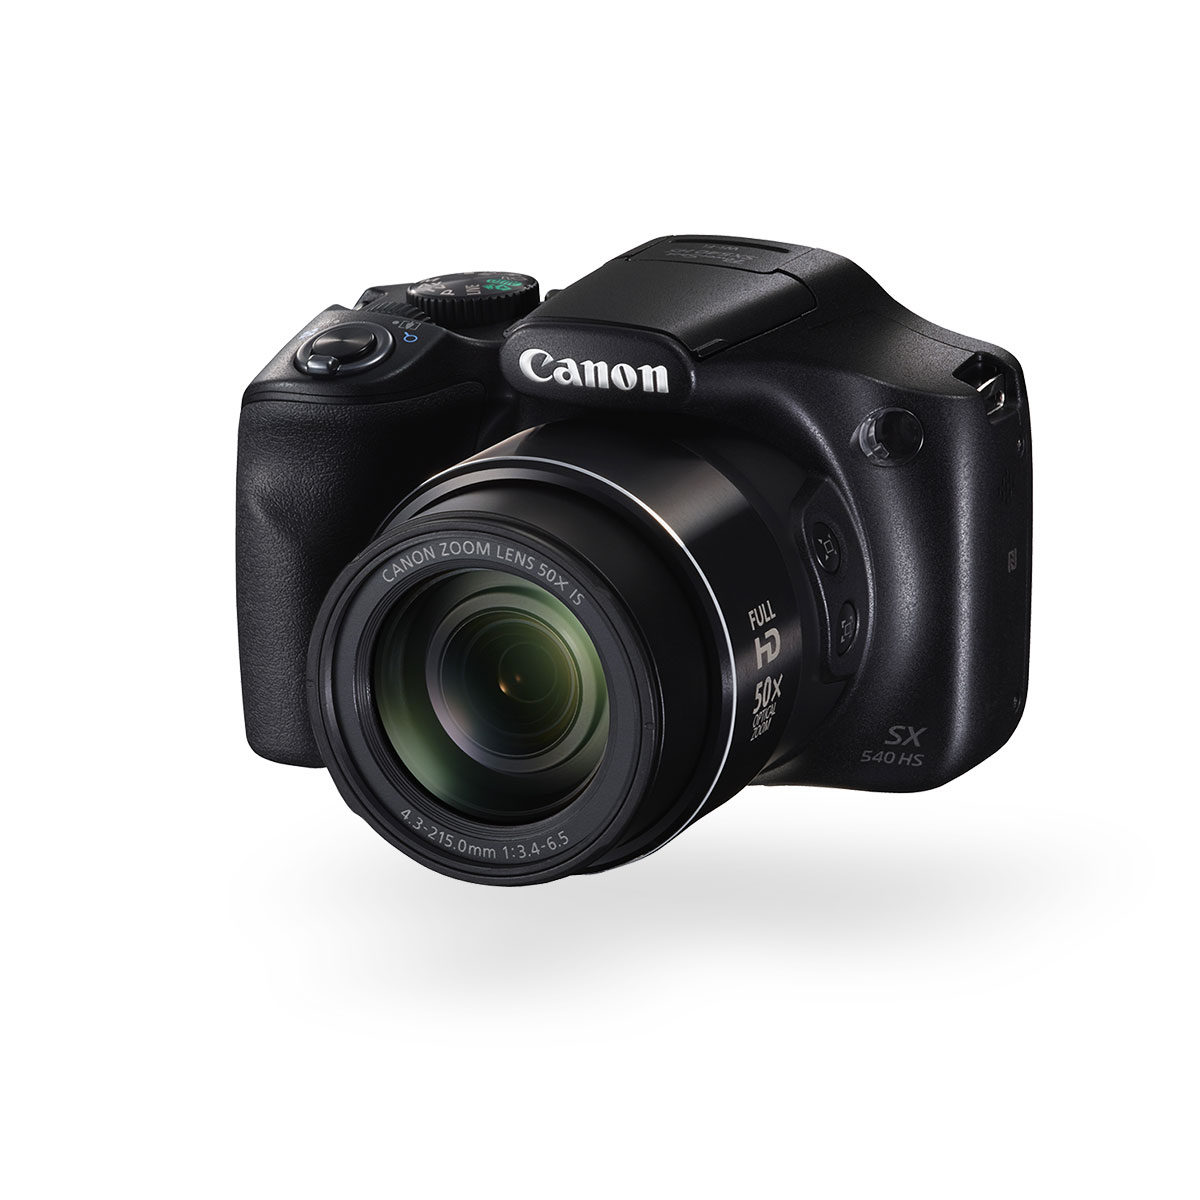 Canon PowerShot SX540 HS digital compact camera black front angled